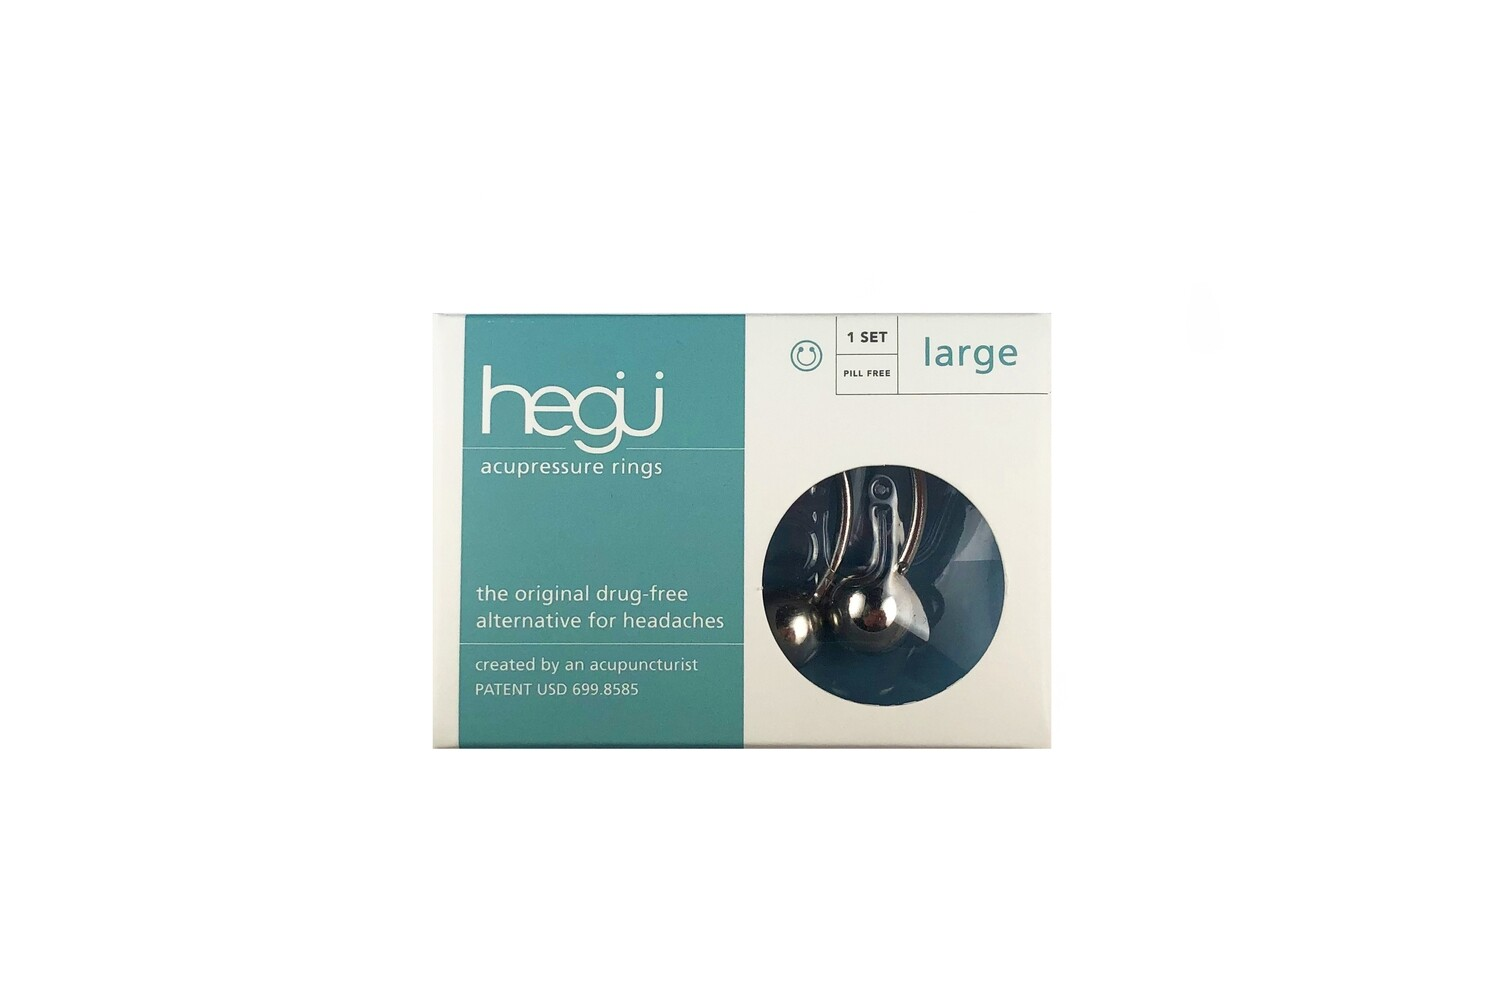 Hegu acupressure rings LARGE